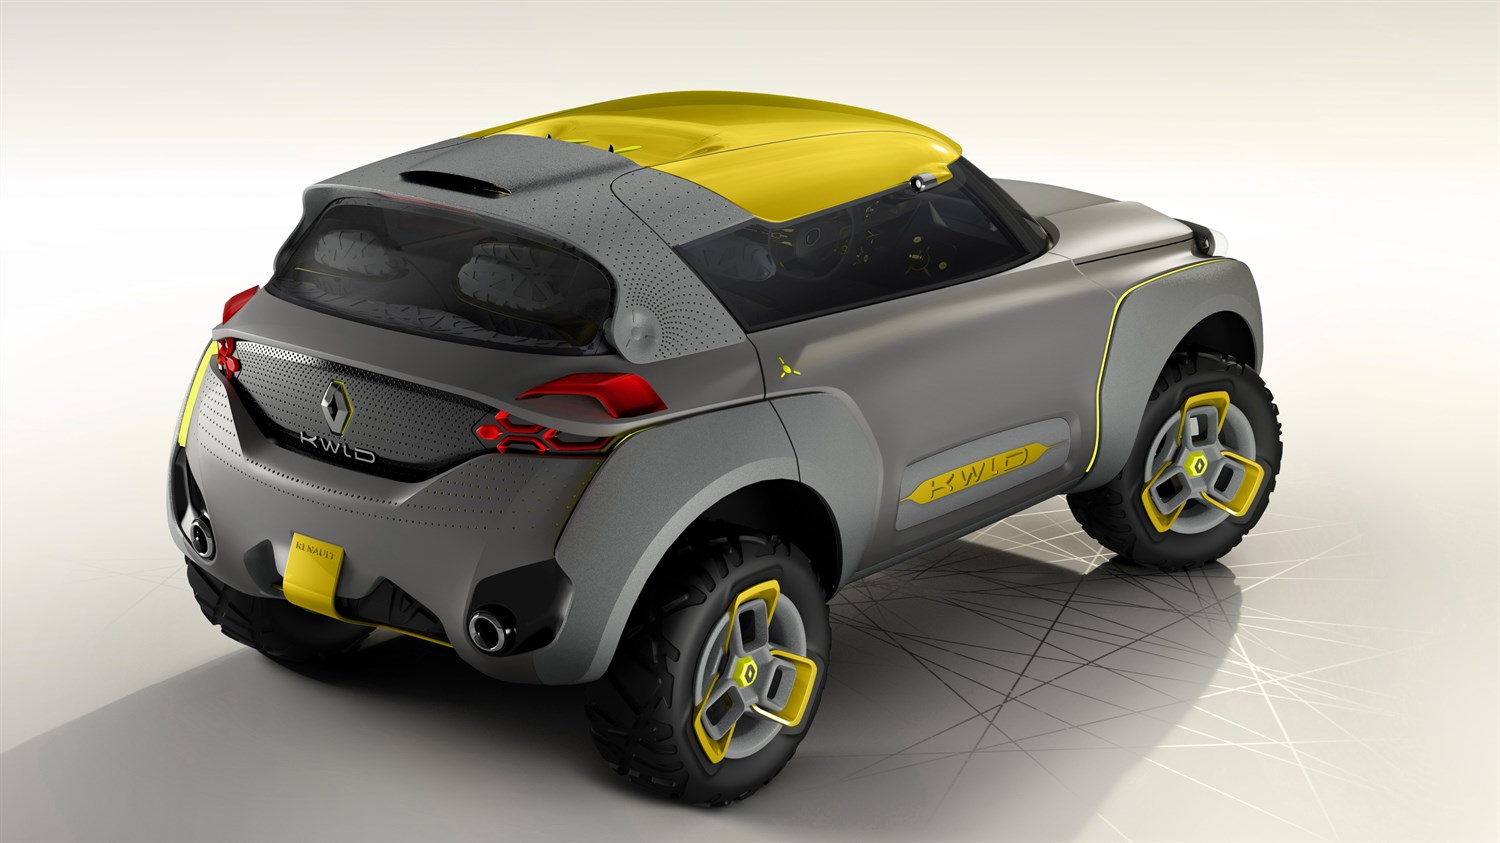 Renault KWID Concept - 3/4 rear view of vehicle